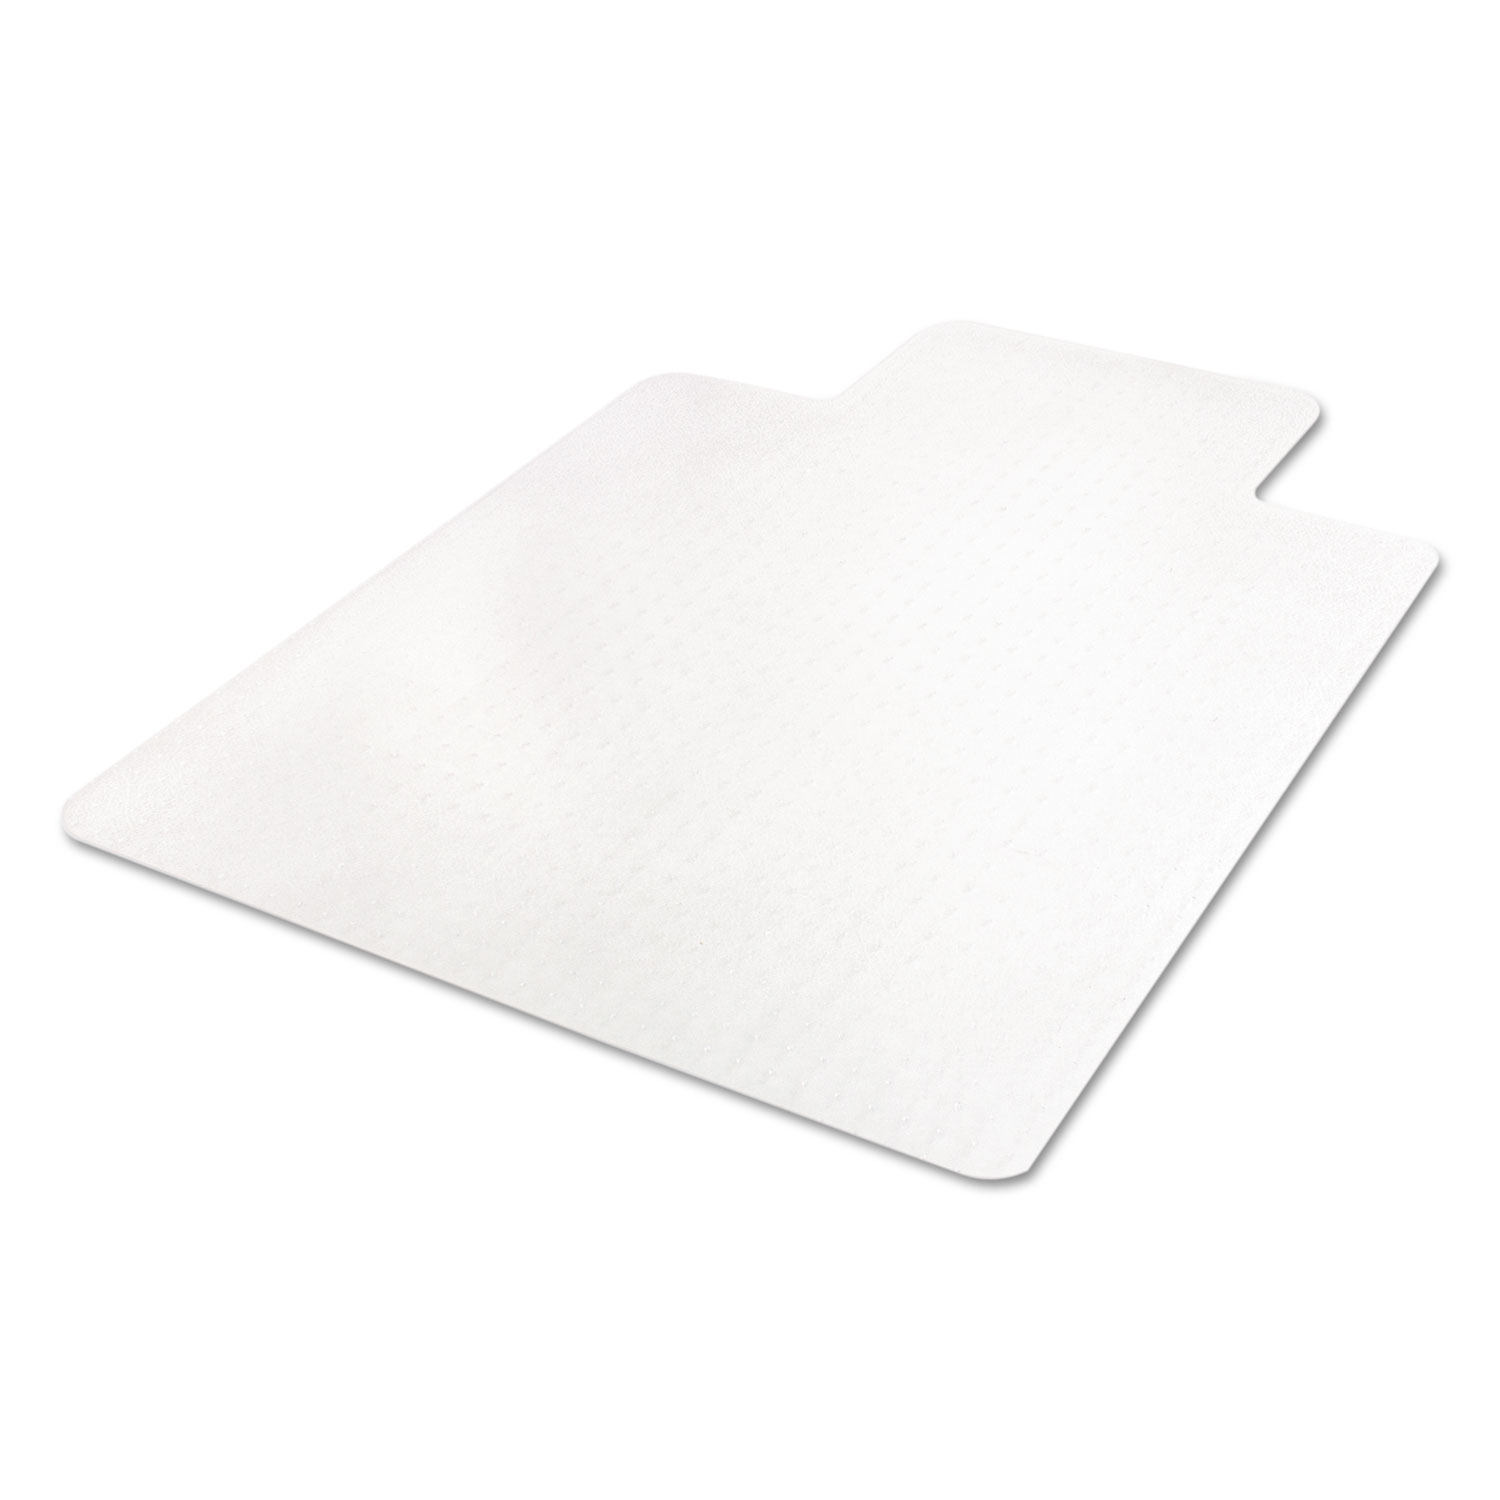 office chair mat 45 x 53 bucket covers for sale economat occasional use low pile by deflecto® defcm11112 - ontimesupplies.com